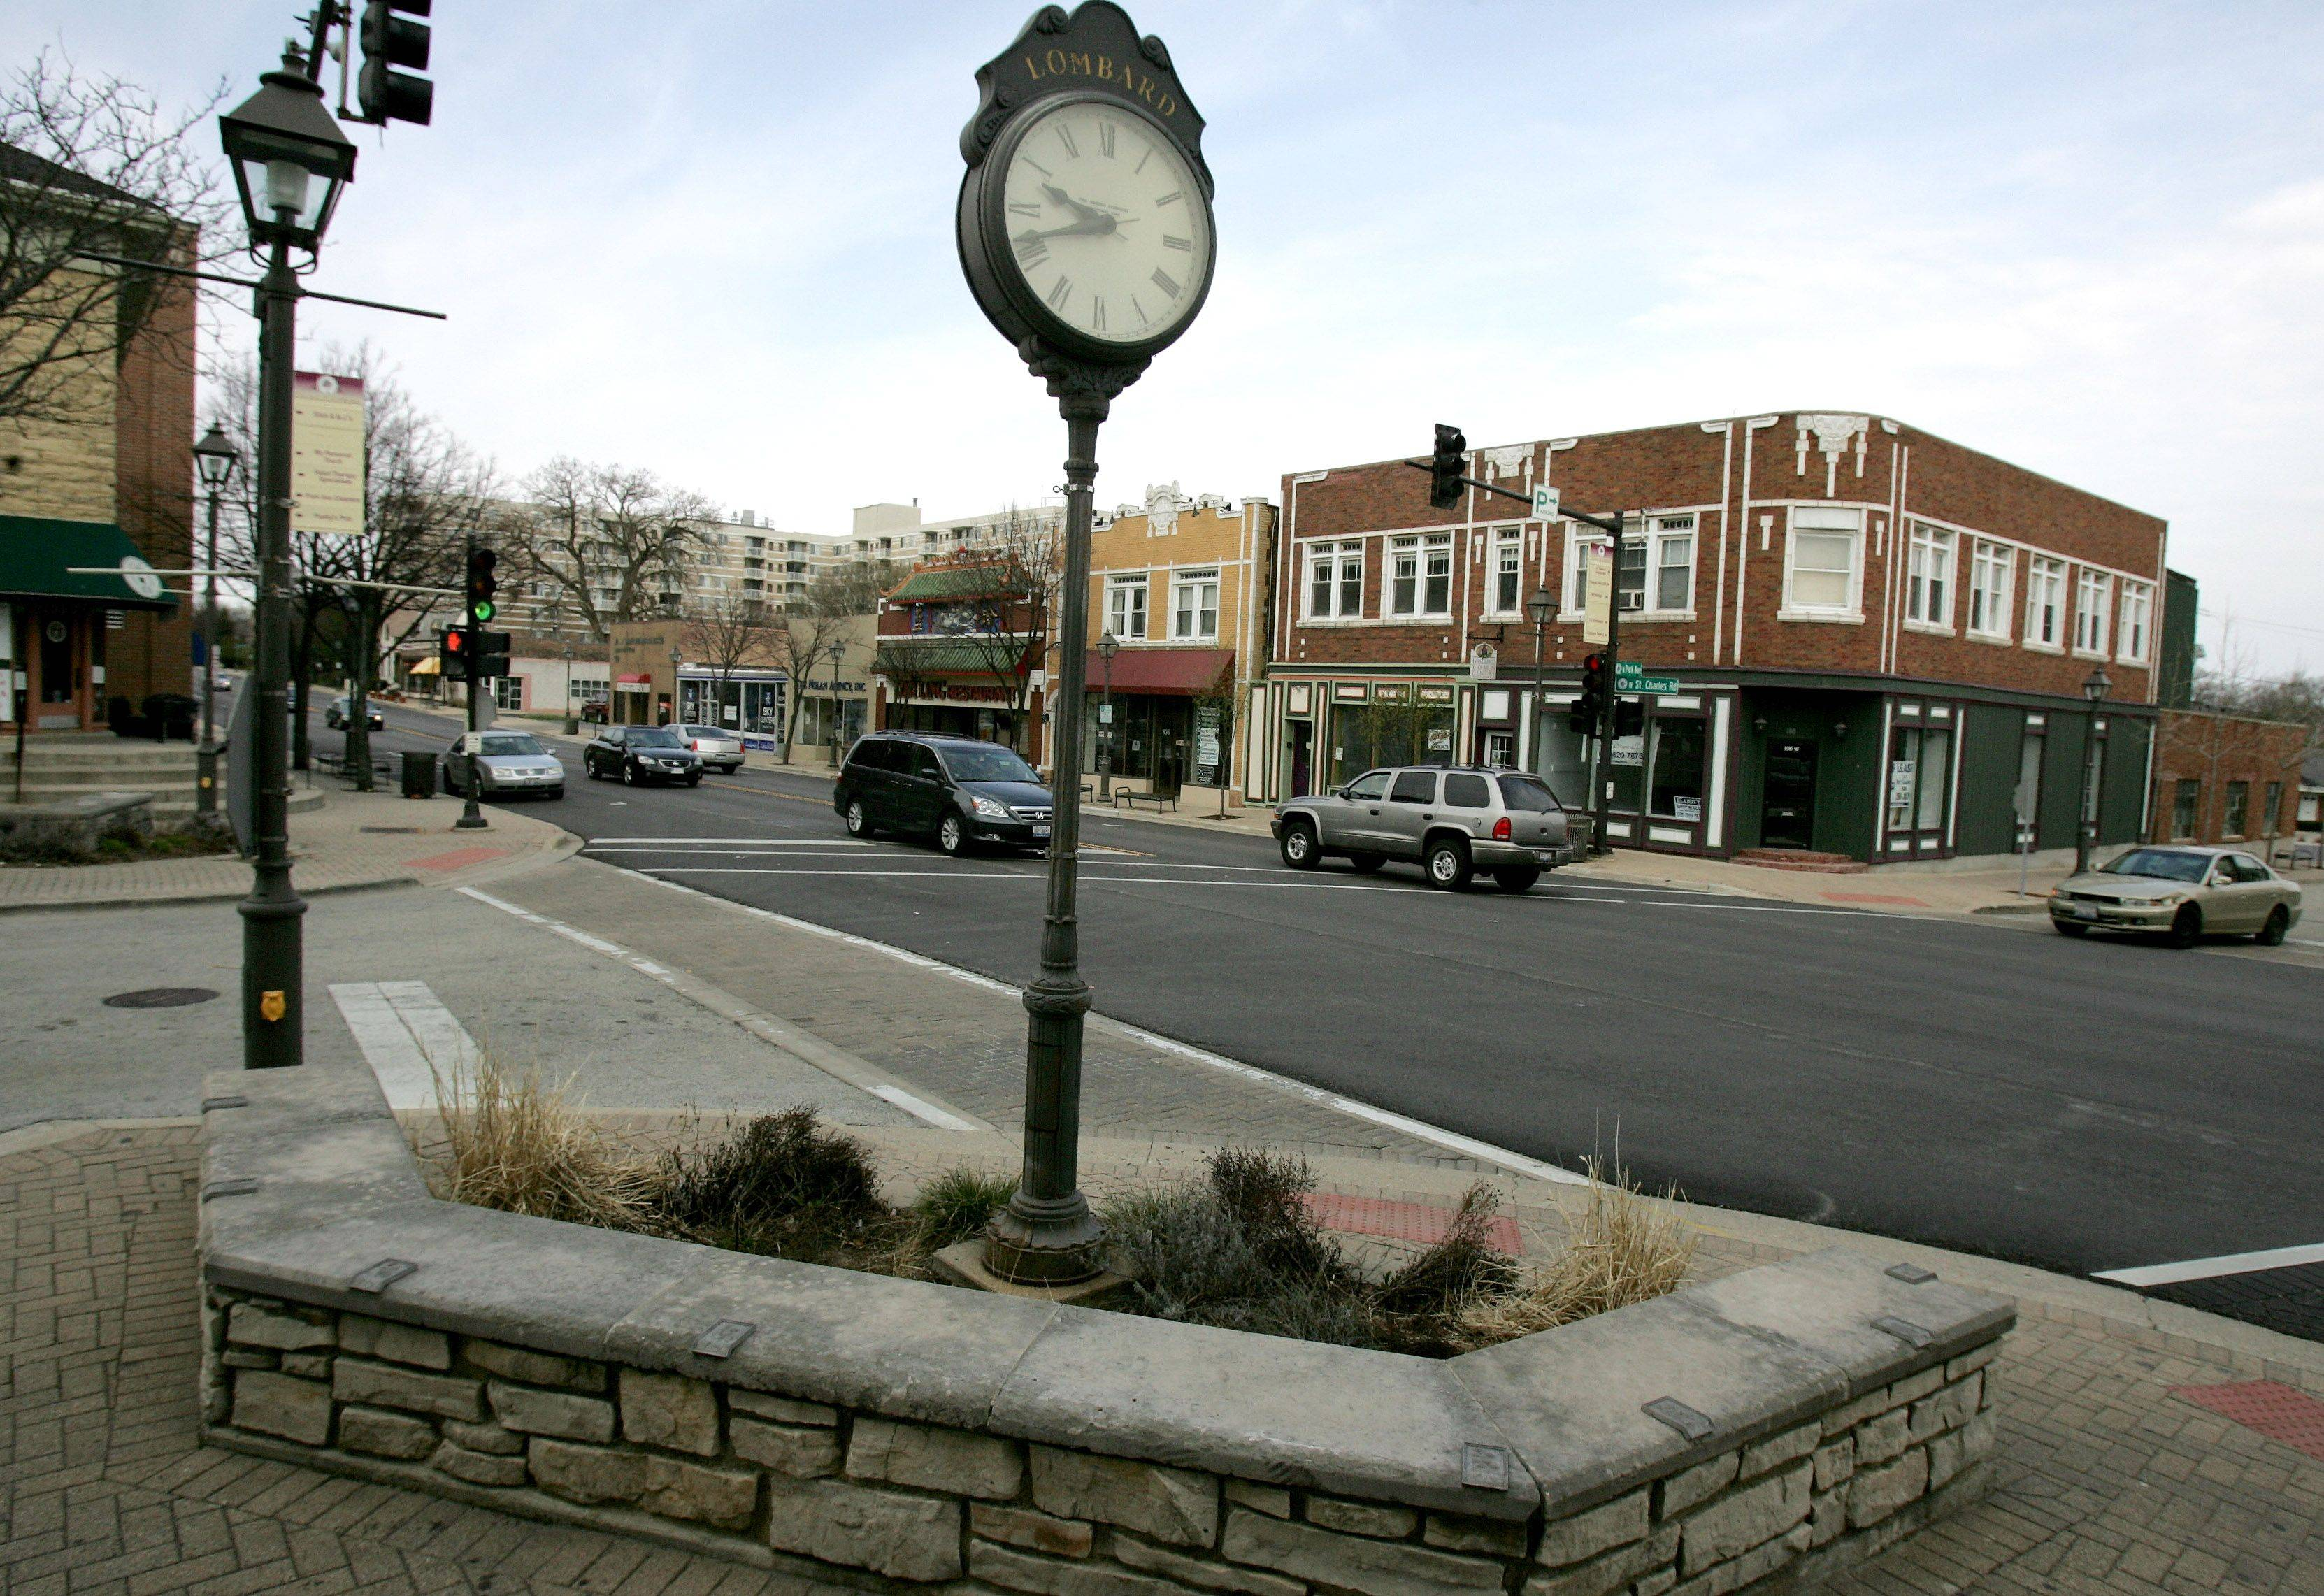 The Lilac Village now has a plan to revitalize downtown Lombard, but the area still has some vacant storefronts to fill.